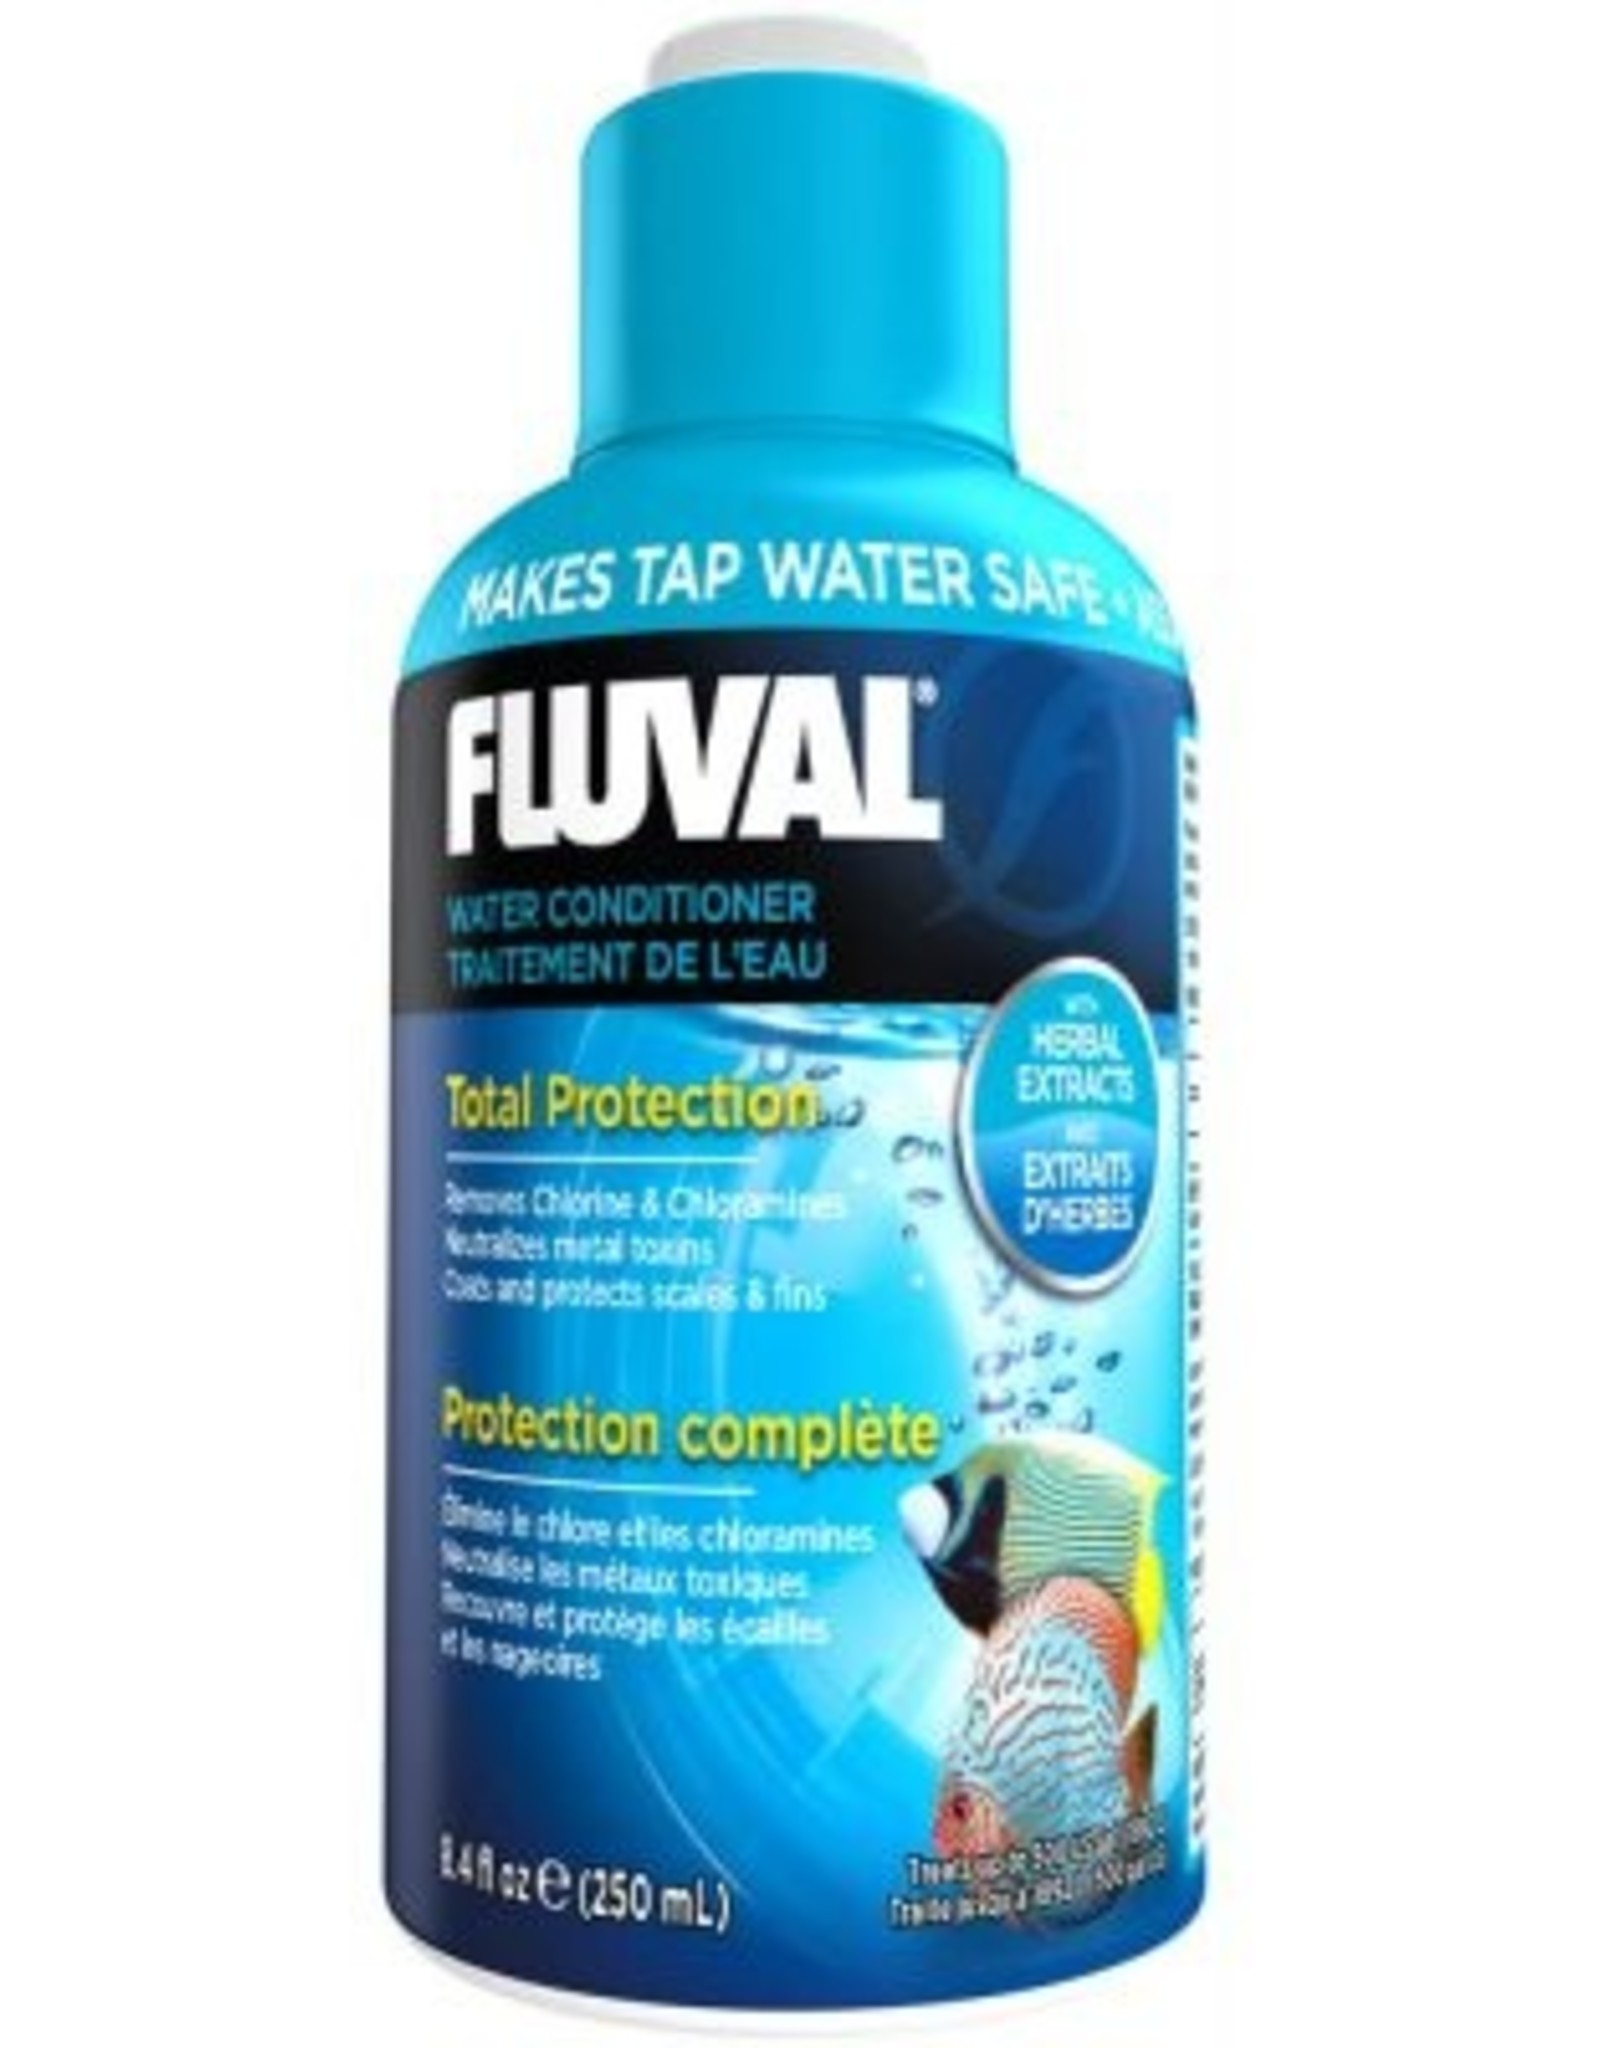 HAGEN FLUVAL AQUA PLUS WATER CONDITIONER 8.4OZ